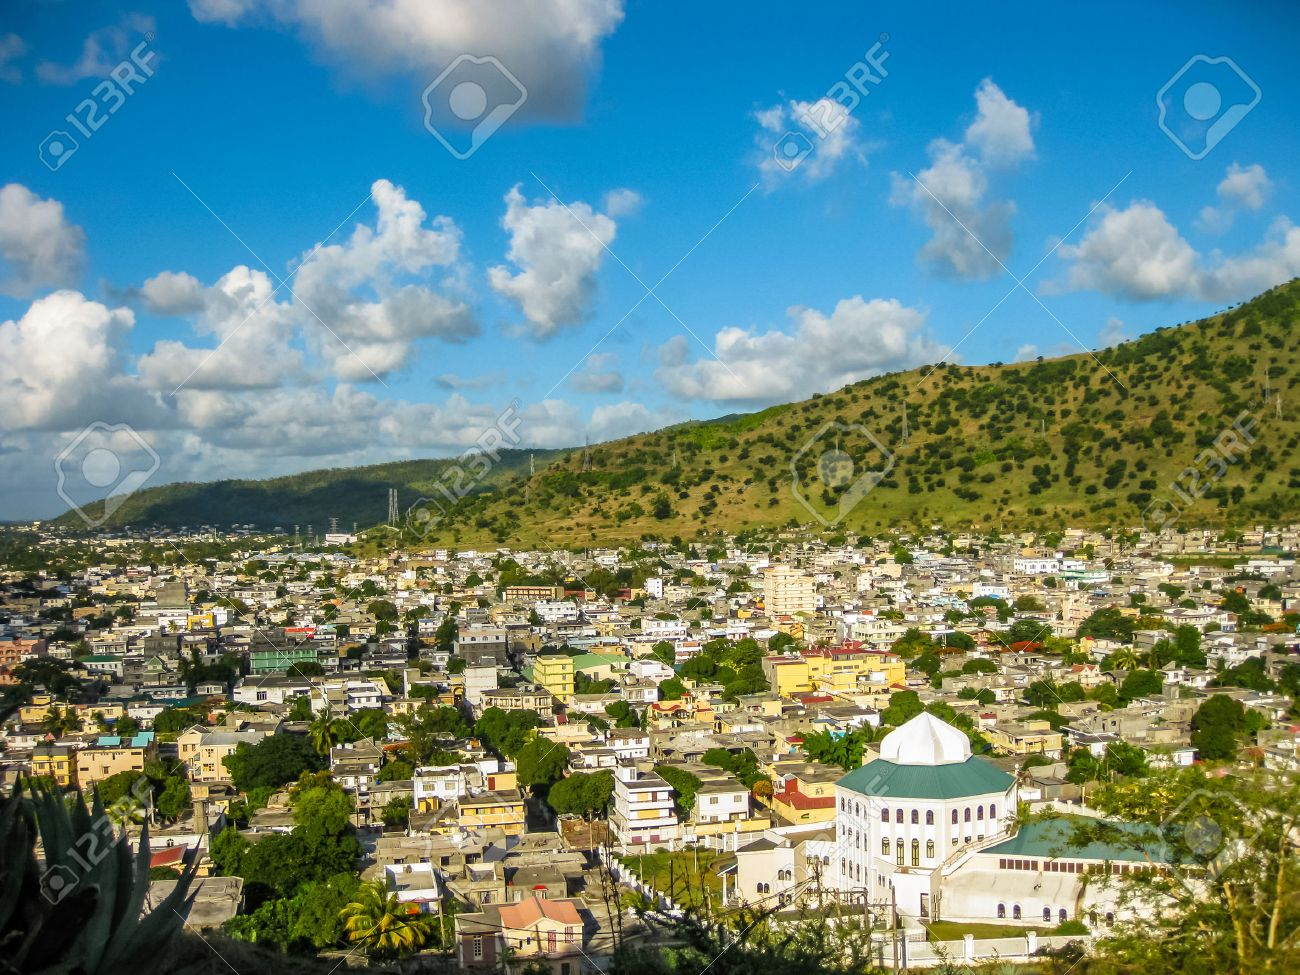 Aerial view of the city of Port Louis, Fort Adelaide overlook, La Citadelle, the capital of the Mauritius Republic, Indian Ocean. Stock Photo - 47470040